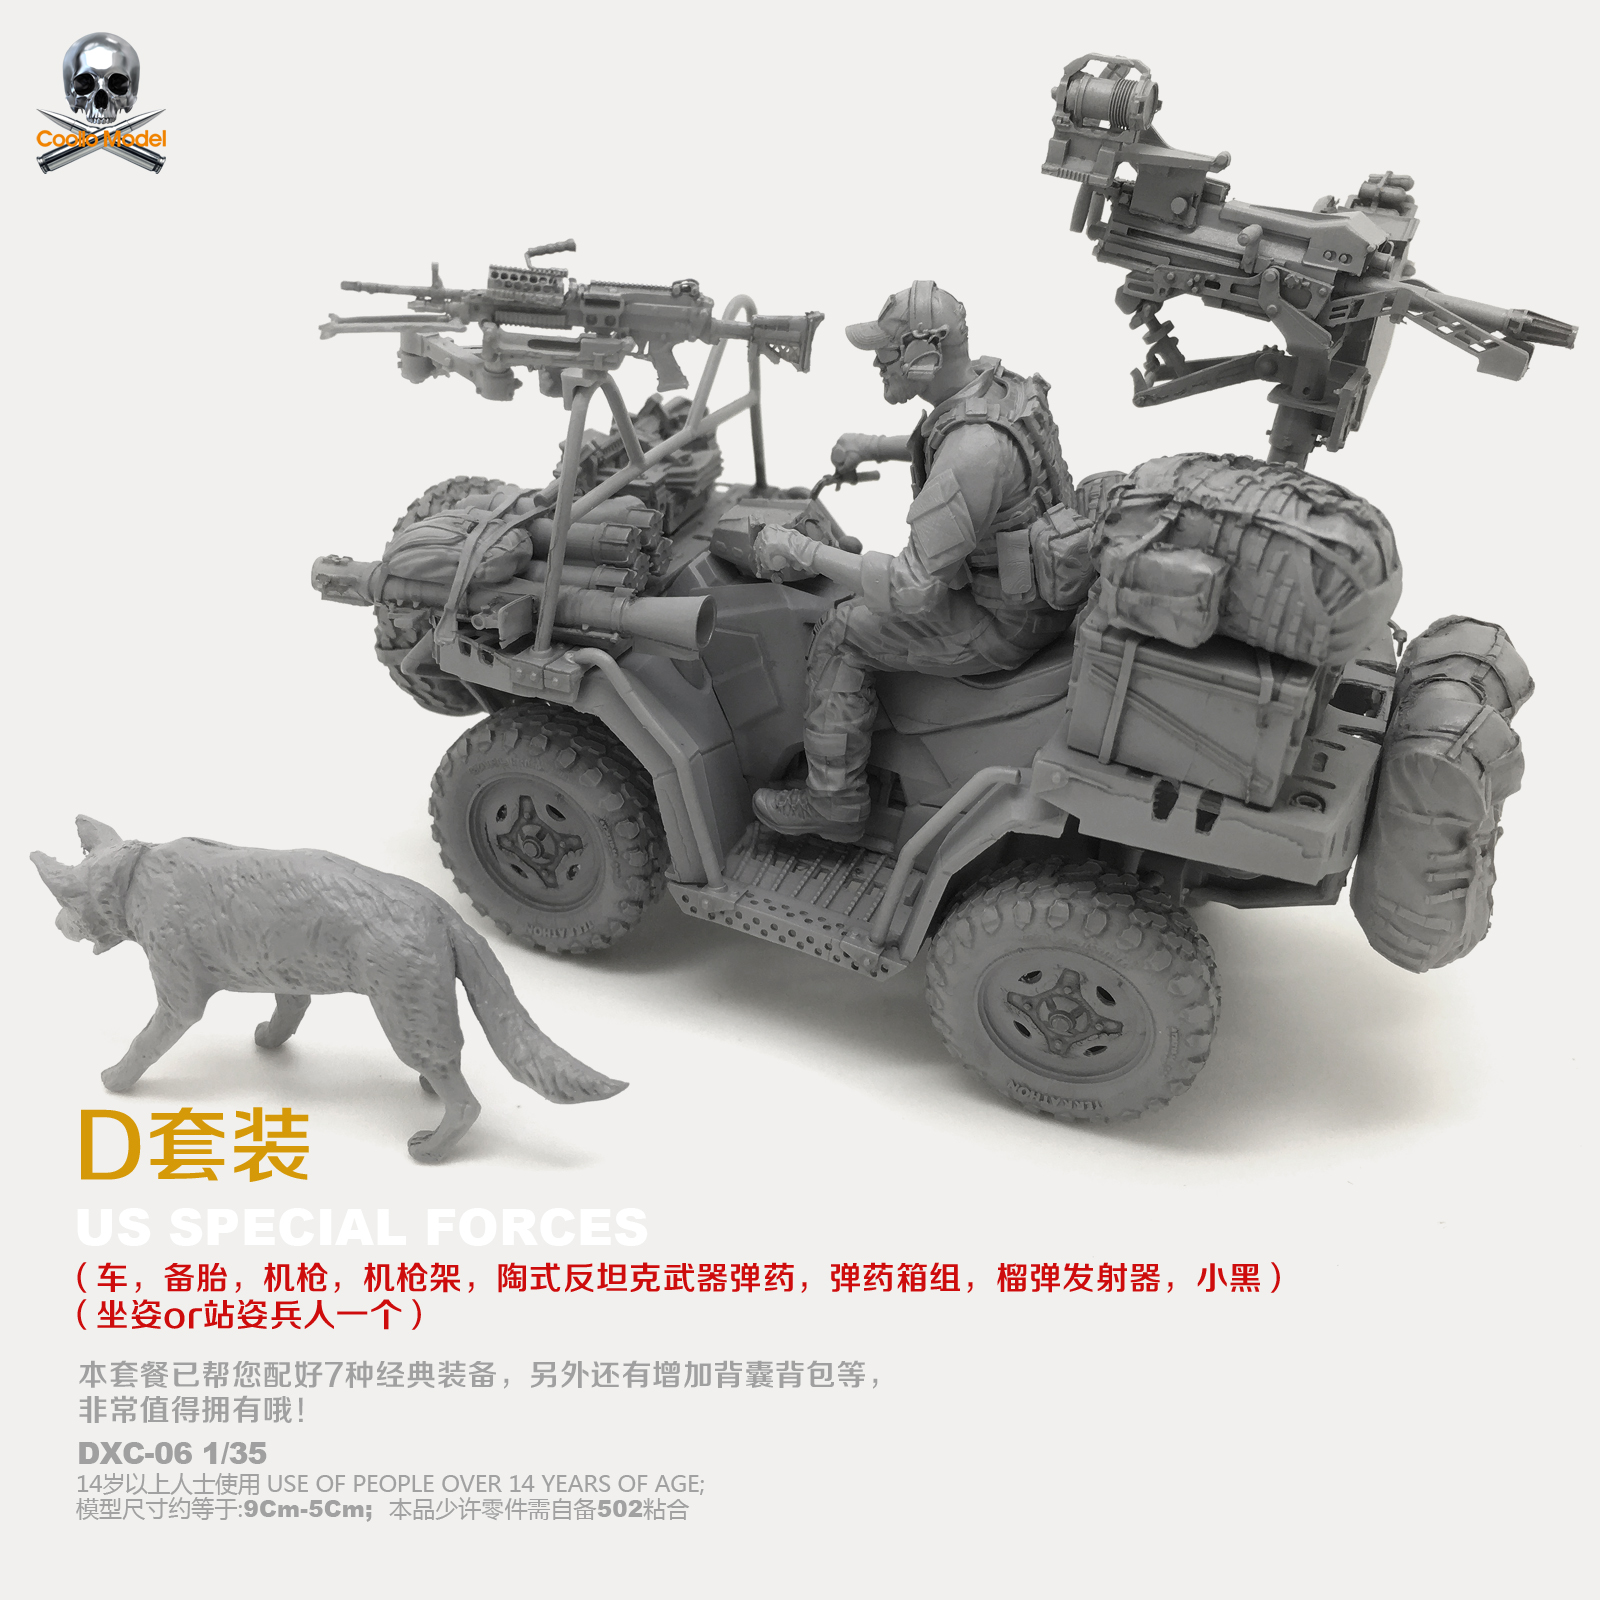 DIY 1/35 Resin Model Dxc 05 for Us Navy Seal Soldiers and Terrain Vehicles ( D Suit )